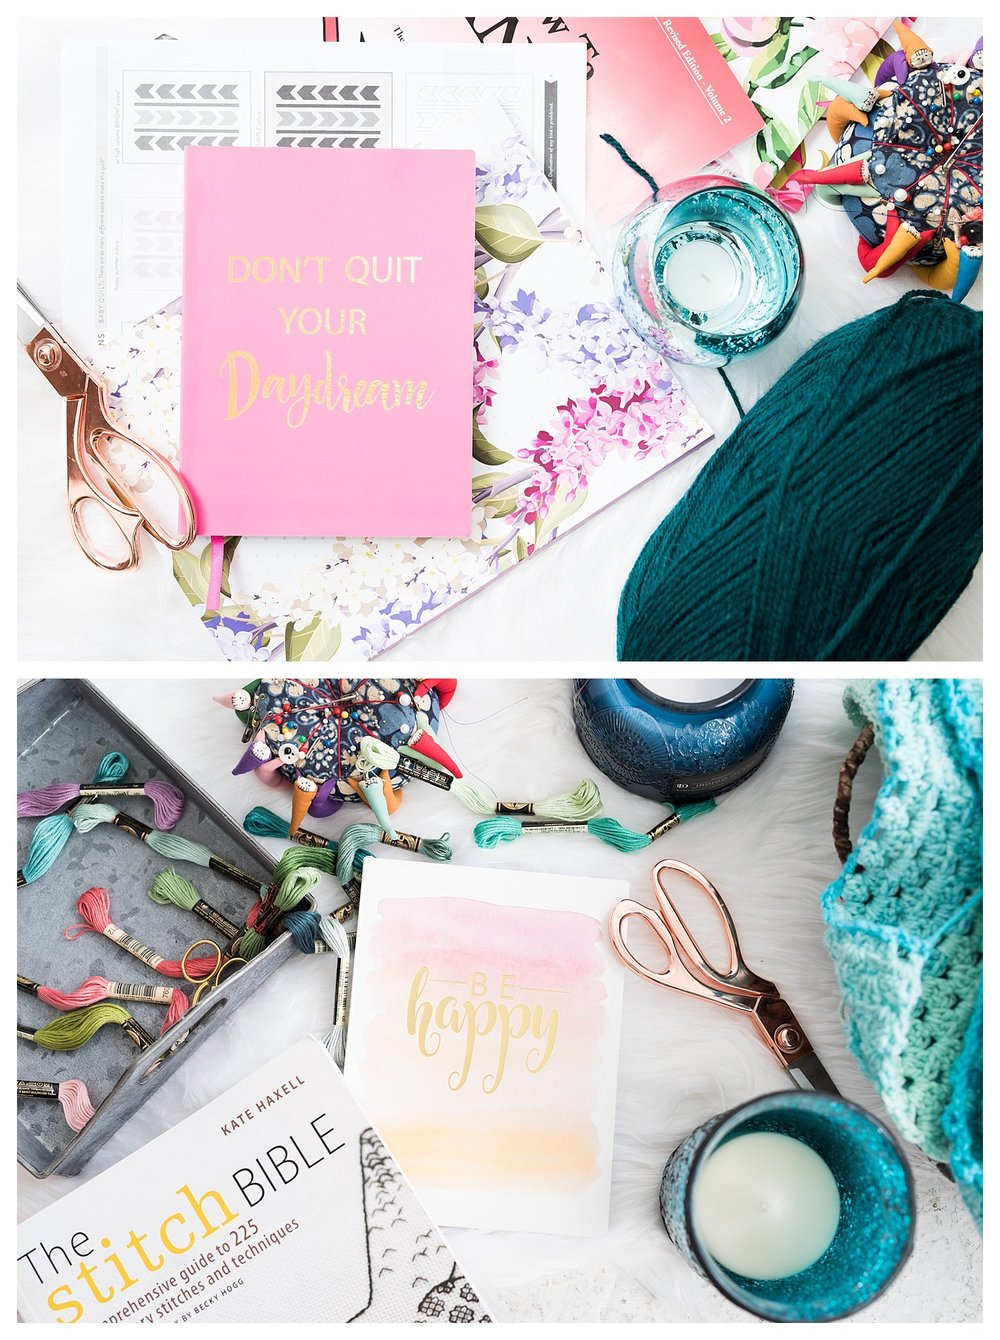 pinterest-flat-lay-ideas-uplifting-quotes-to-live-by-melissa-raelynn-photography-branding-photos.jpg